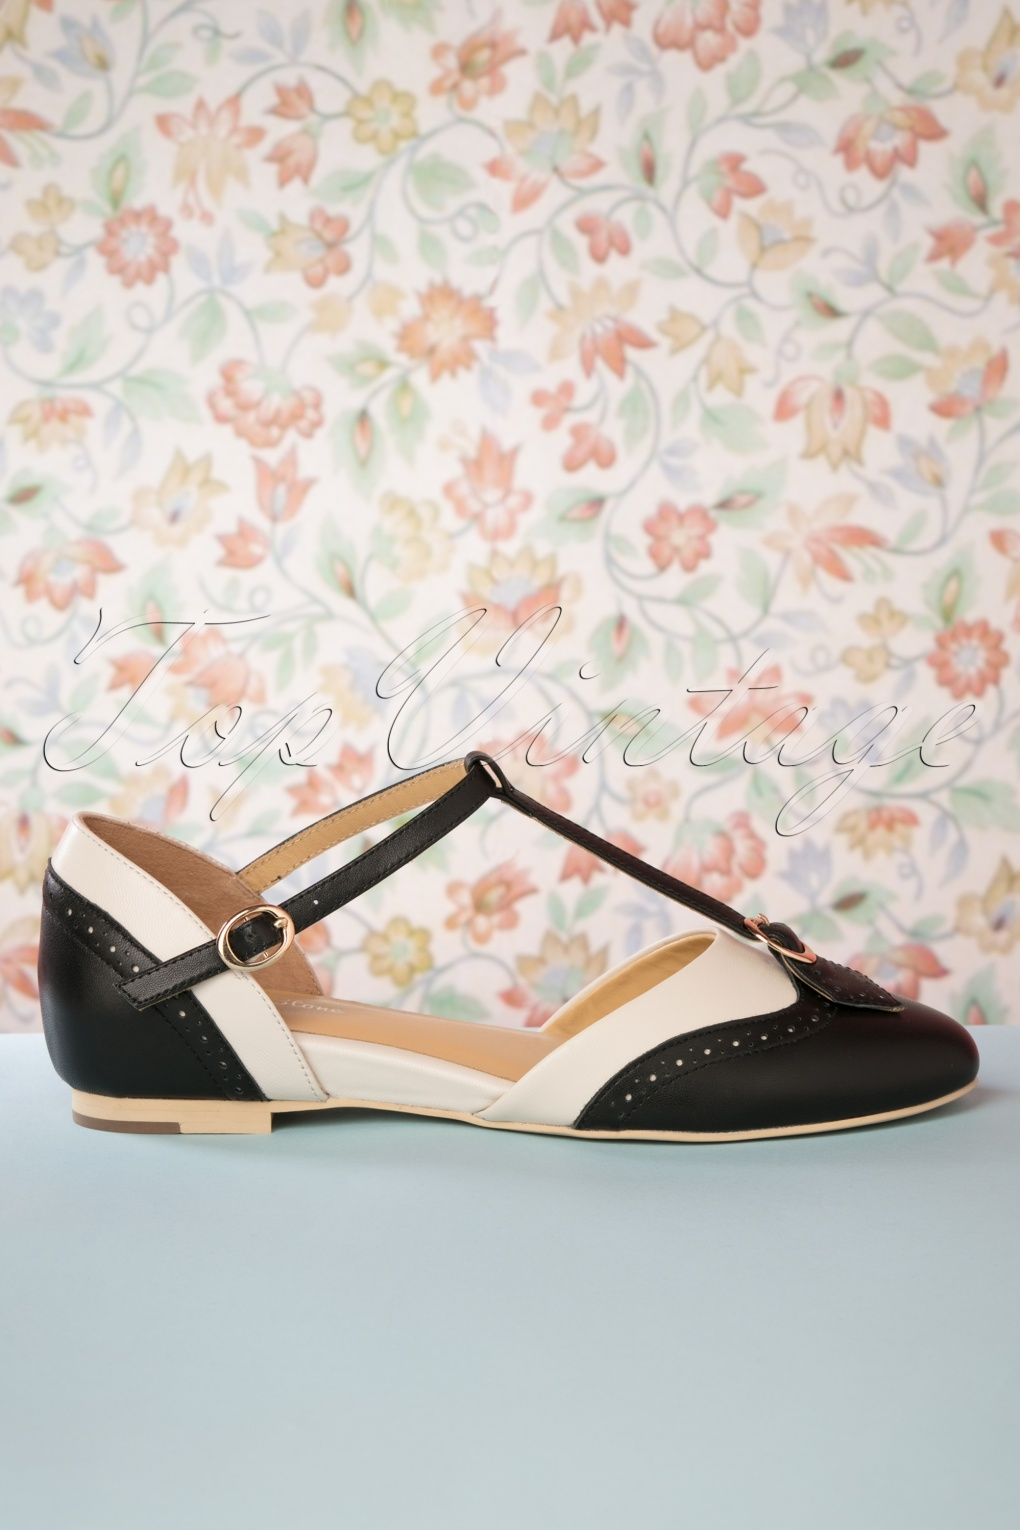 1950s Style Shoes | Heels, Flats, Saddle Shoes 50s Parisienne T-Strap Flats in Black and Cream £106.69 AT vintagedancer.com